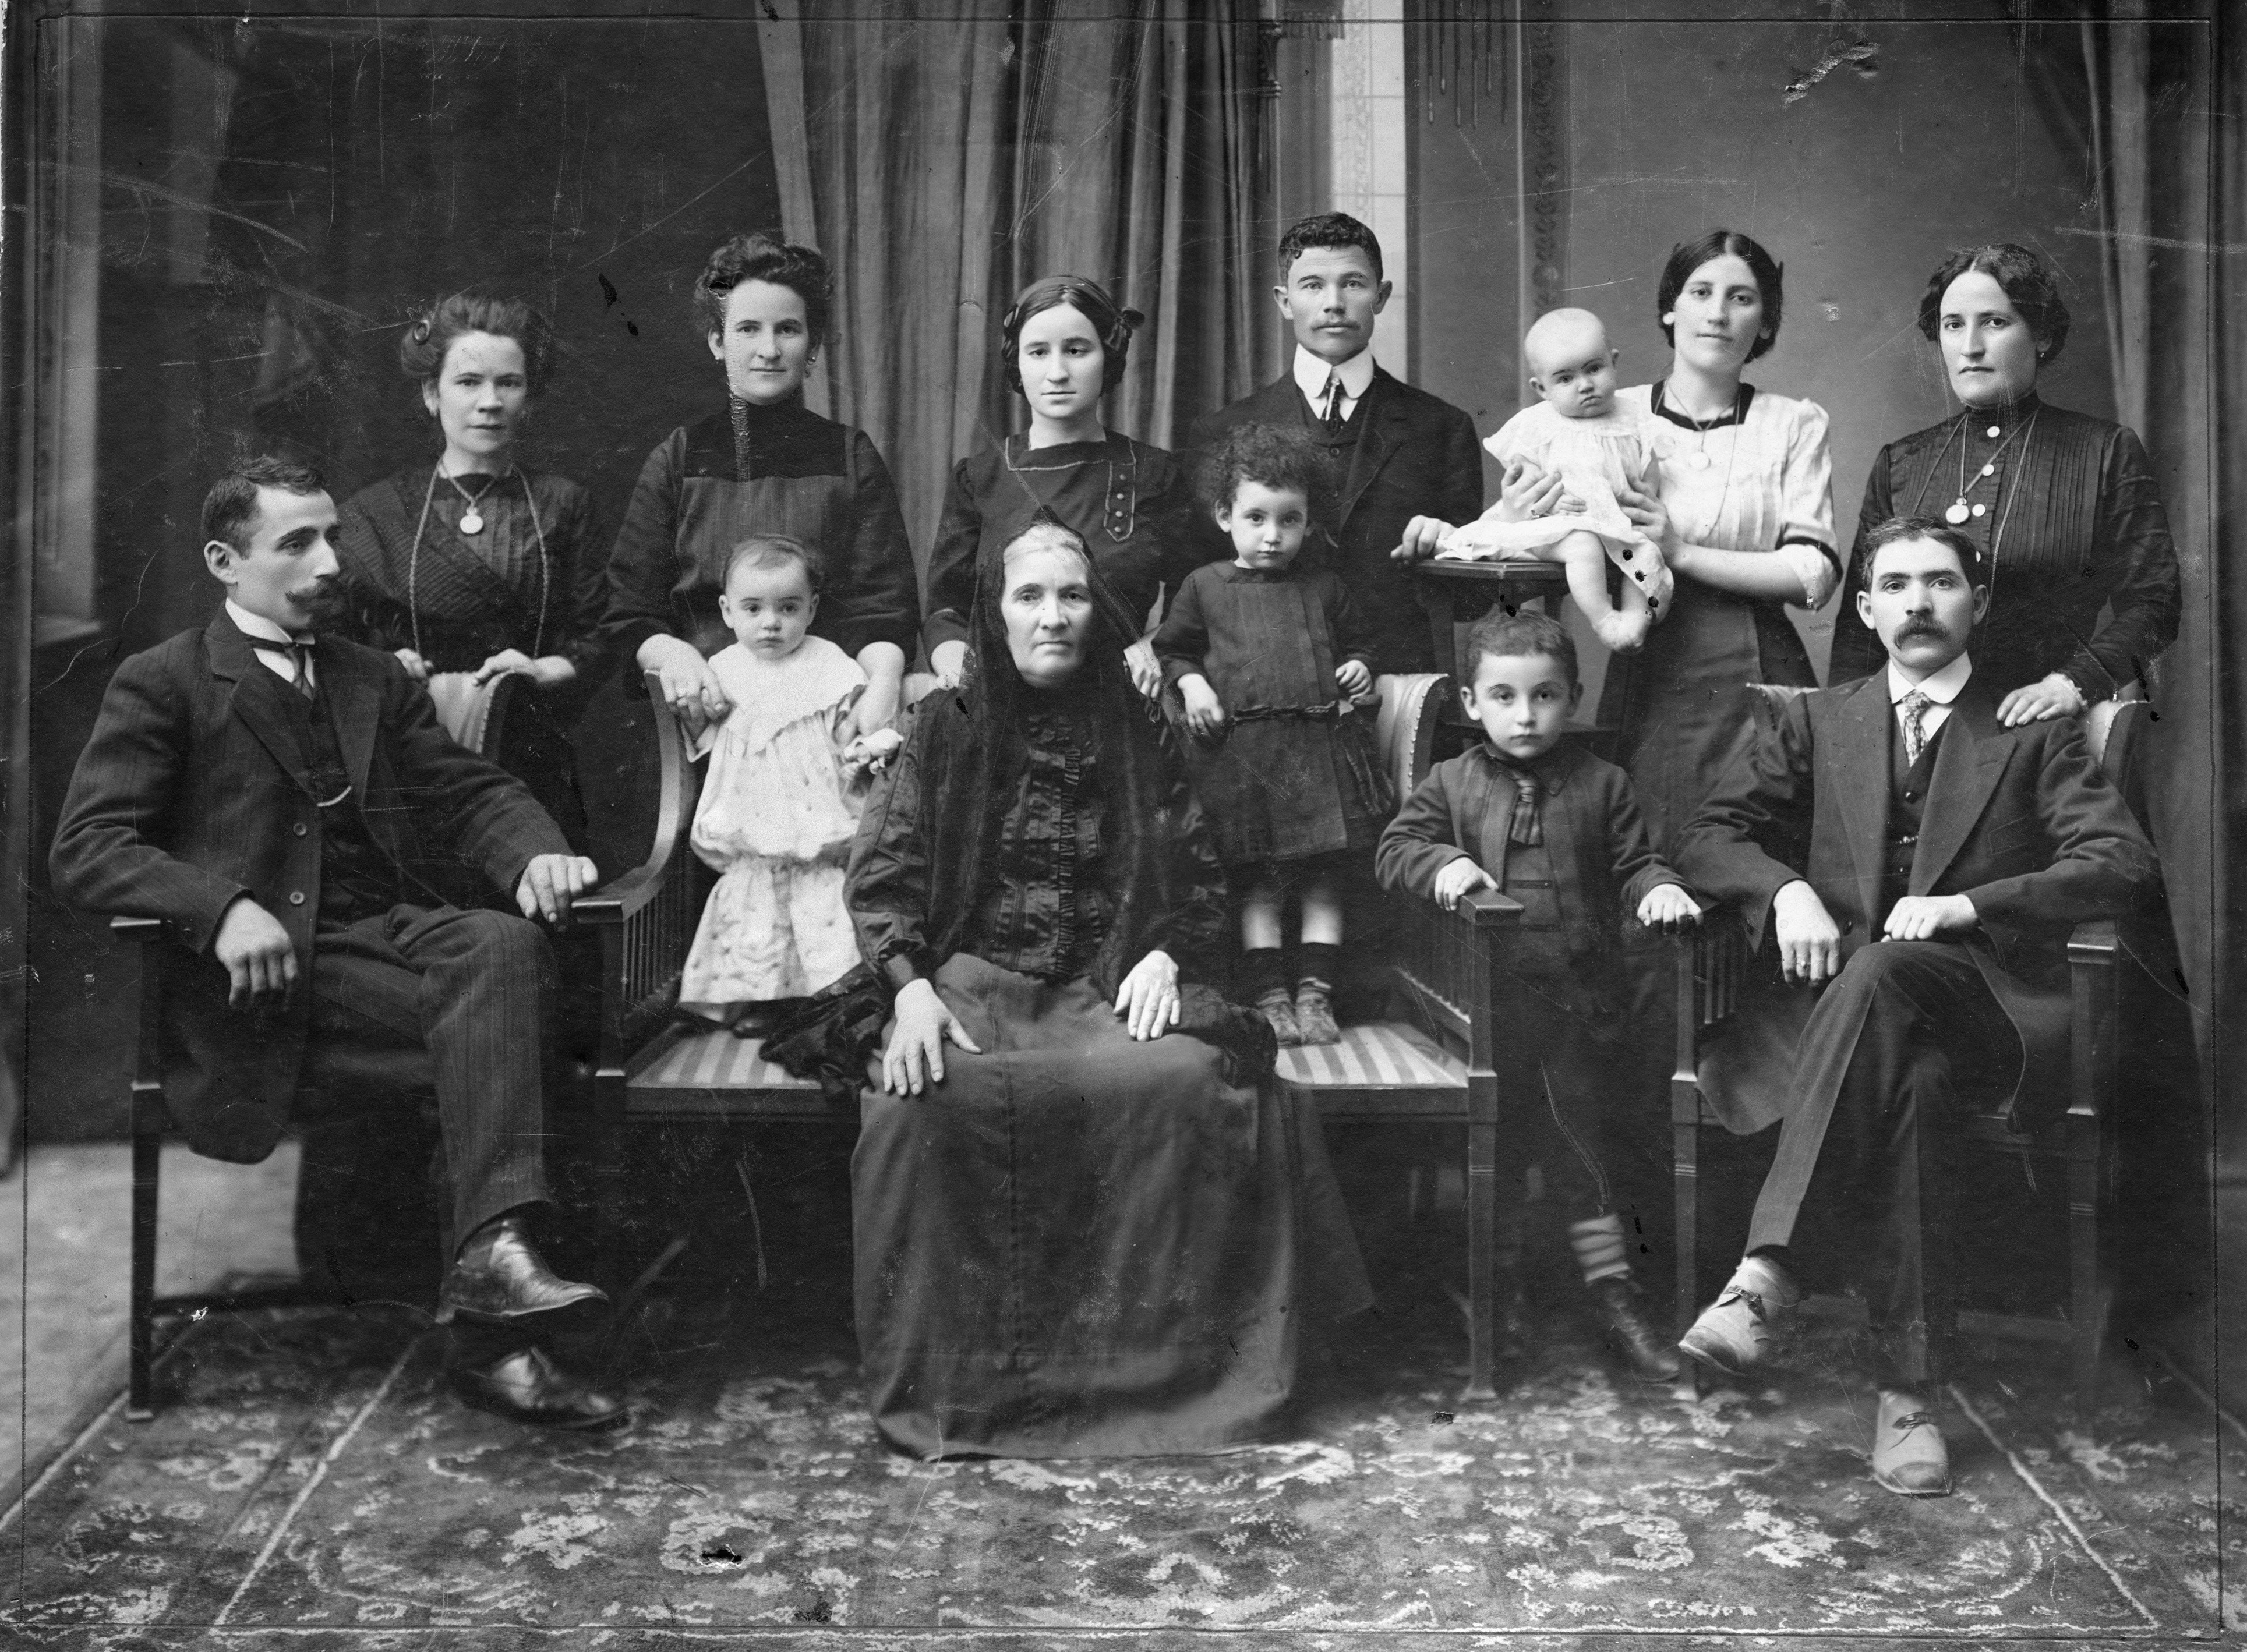 ... 2.7 MB Diamond Family Portrait, 1910 (3858x2837) JPEG ...